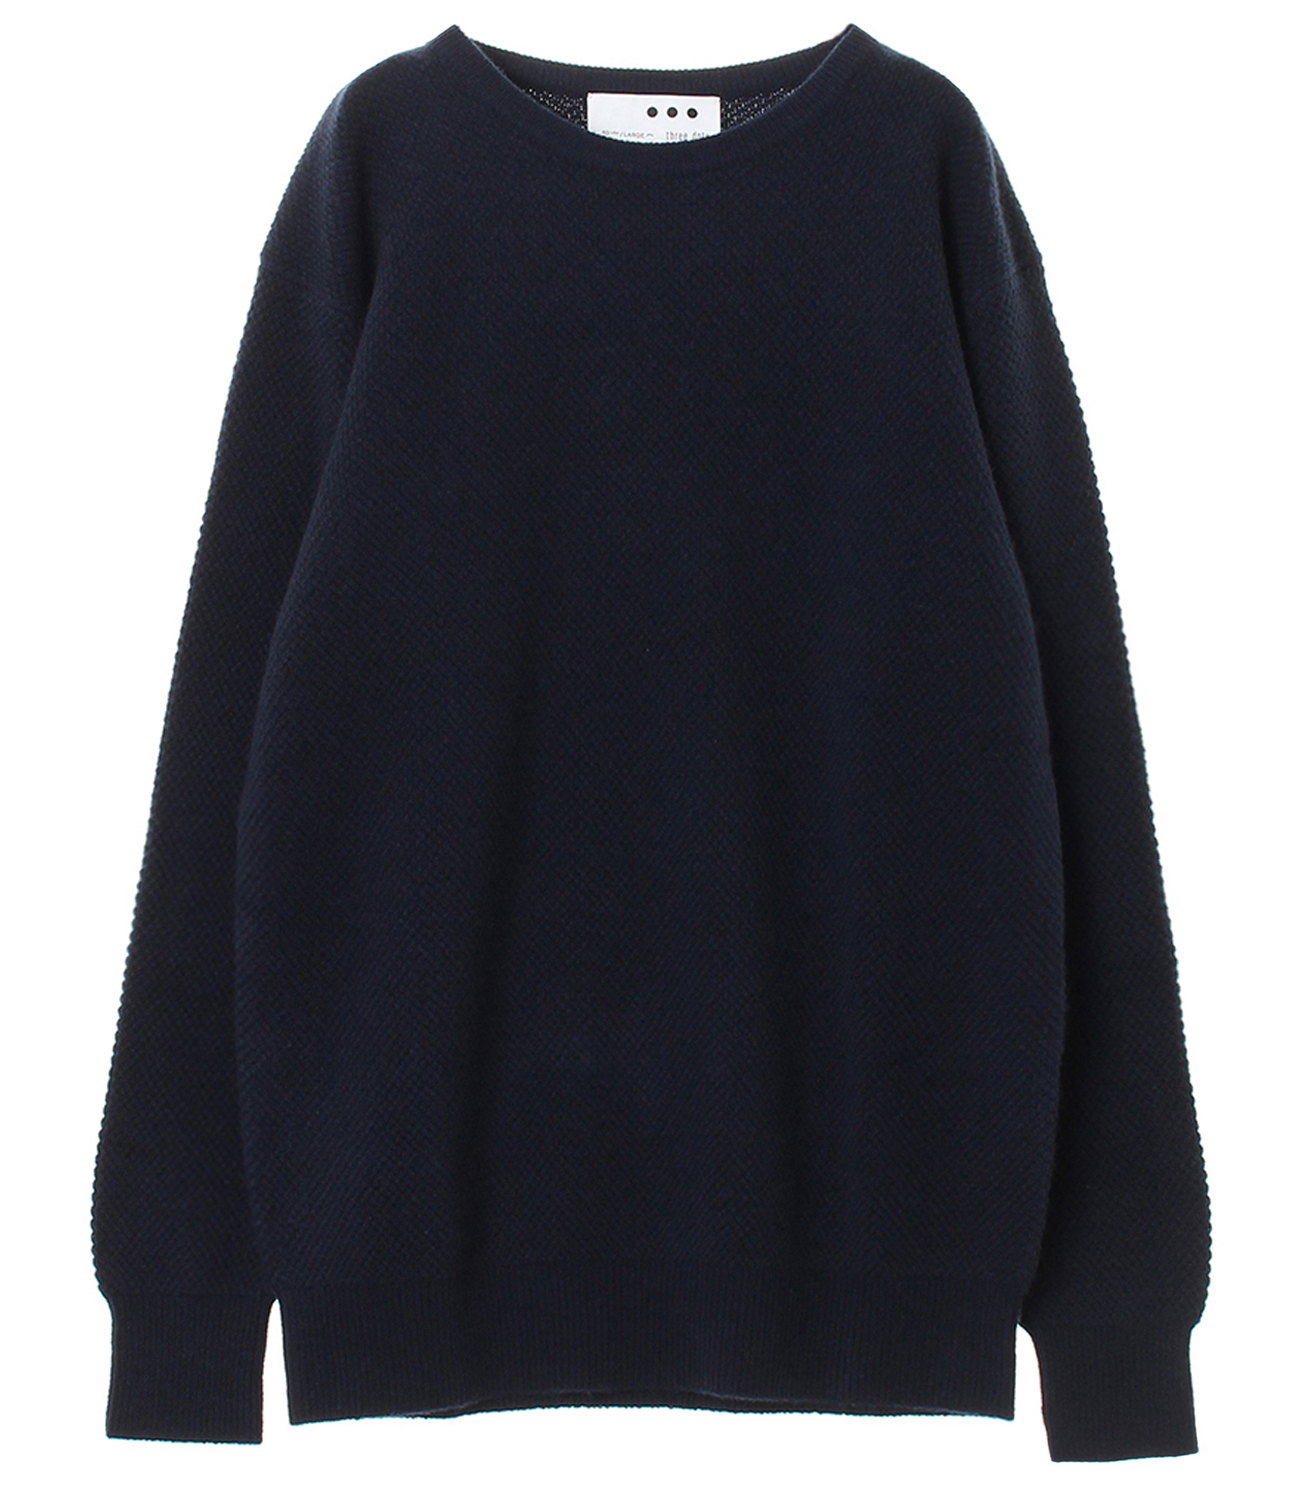 Men's pure cashmere waffle crew 詳細画像 navy 1